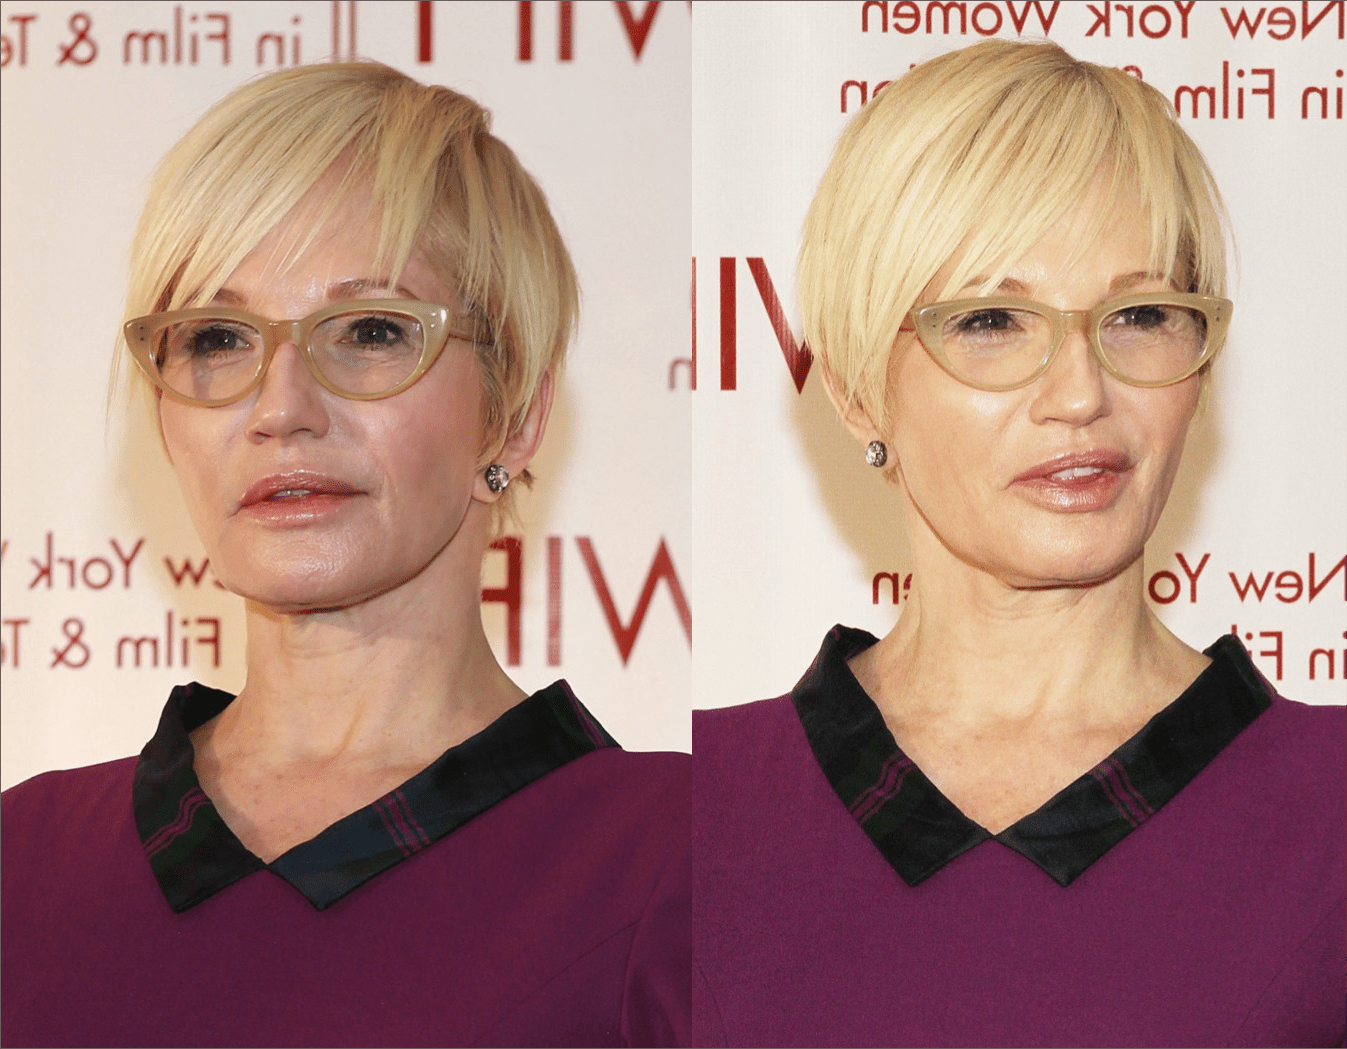 Short Hairstyles For Women With Round Faces And Glasses Beautiful 34 Intended For Short Haircuts For Round Faces And Glasses (View 16 of 25)